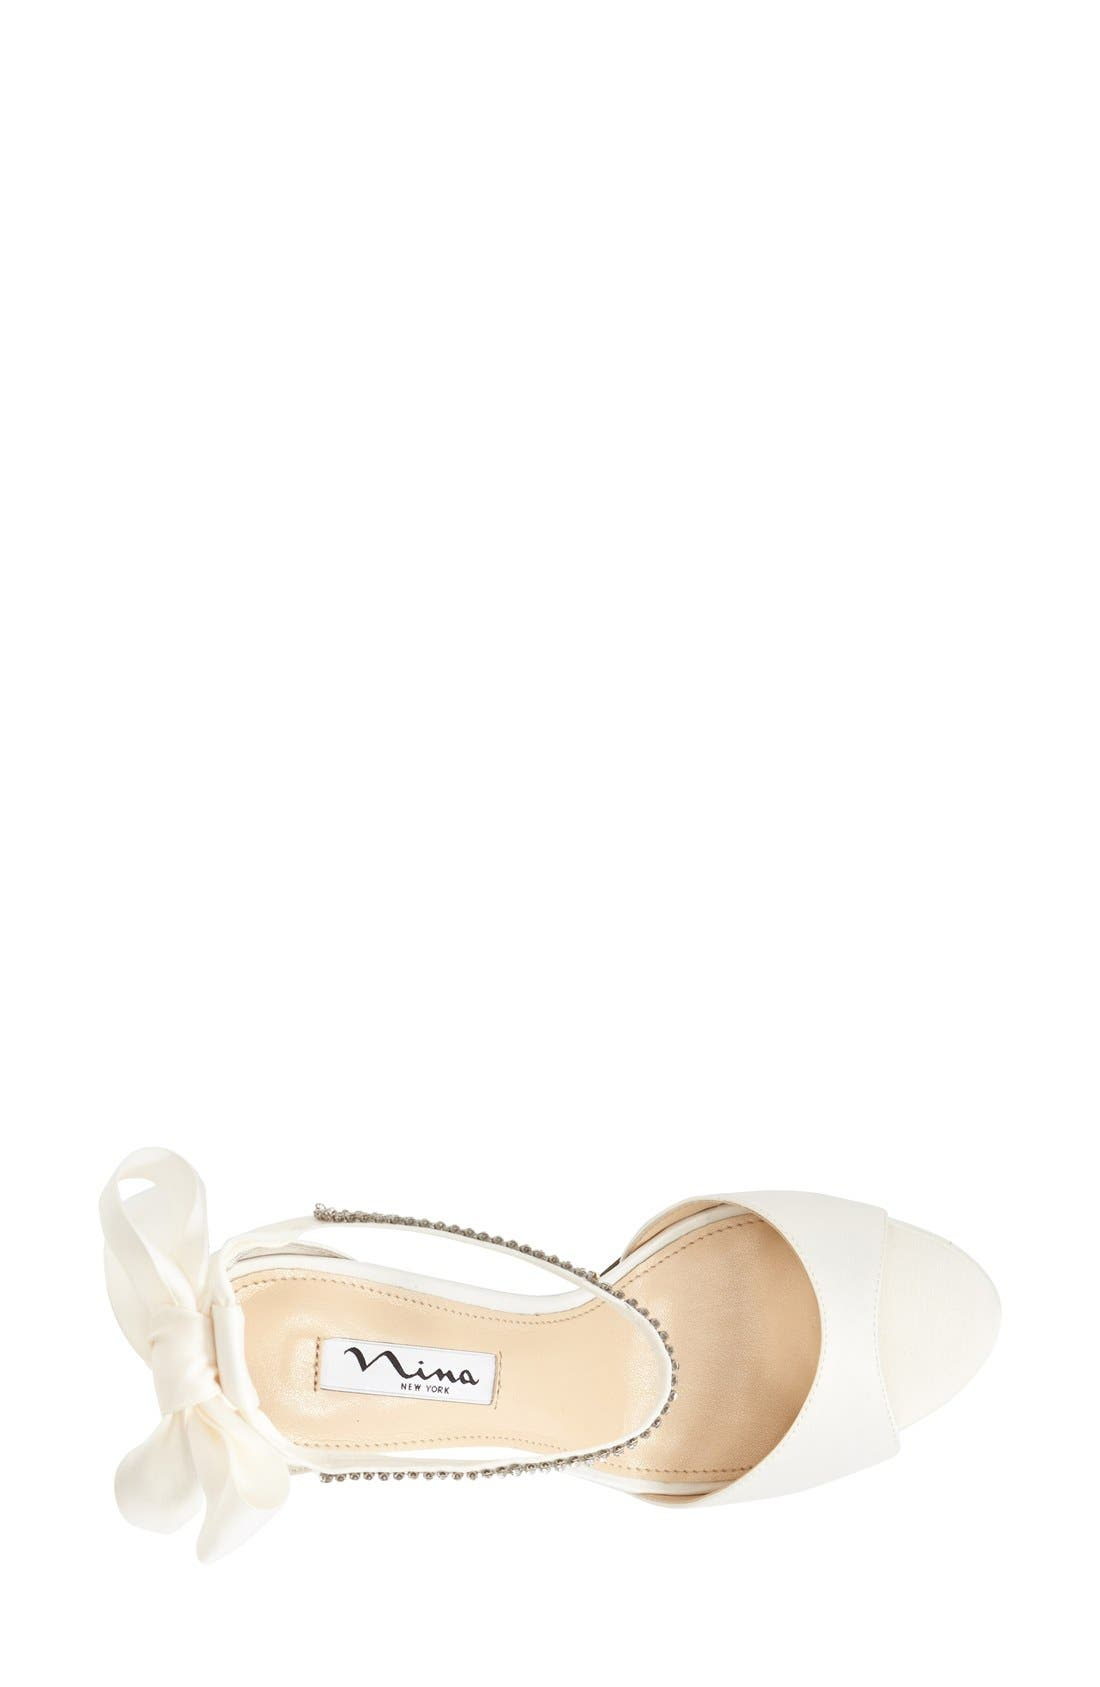 'Vinnie' Crystal Embellished Ankle Strap Sandal,                             Alternate thumbnail 3, color,                             IVORY